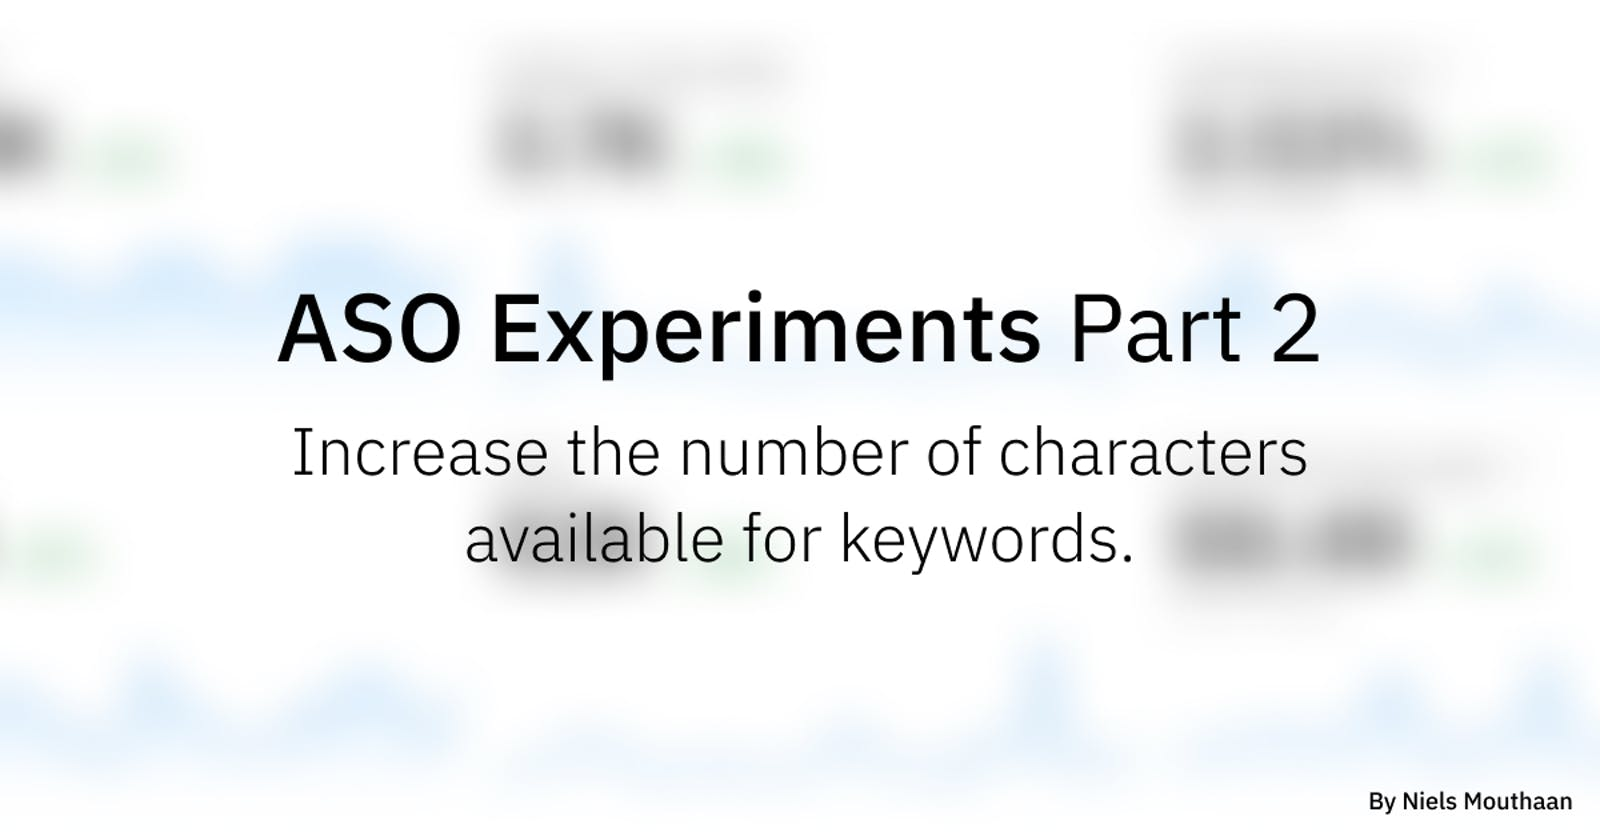 ASO Experiments Part 2: Increase the number of characters available for keywords